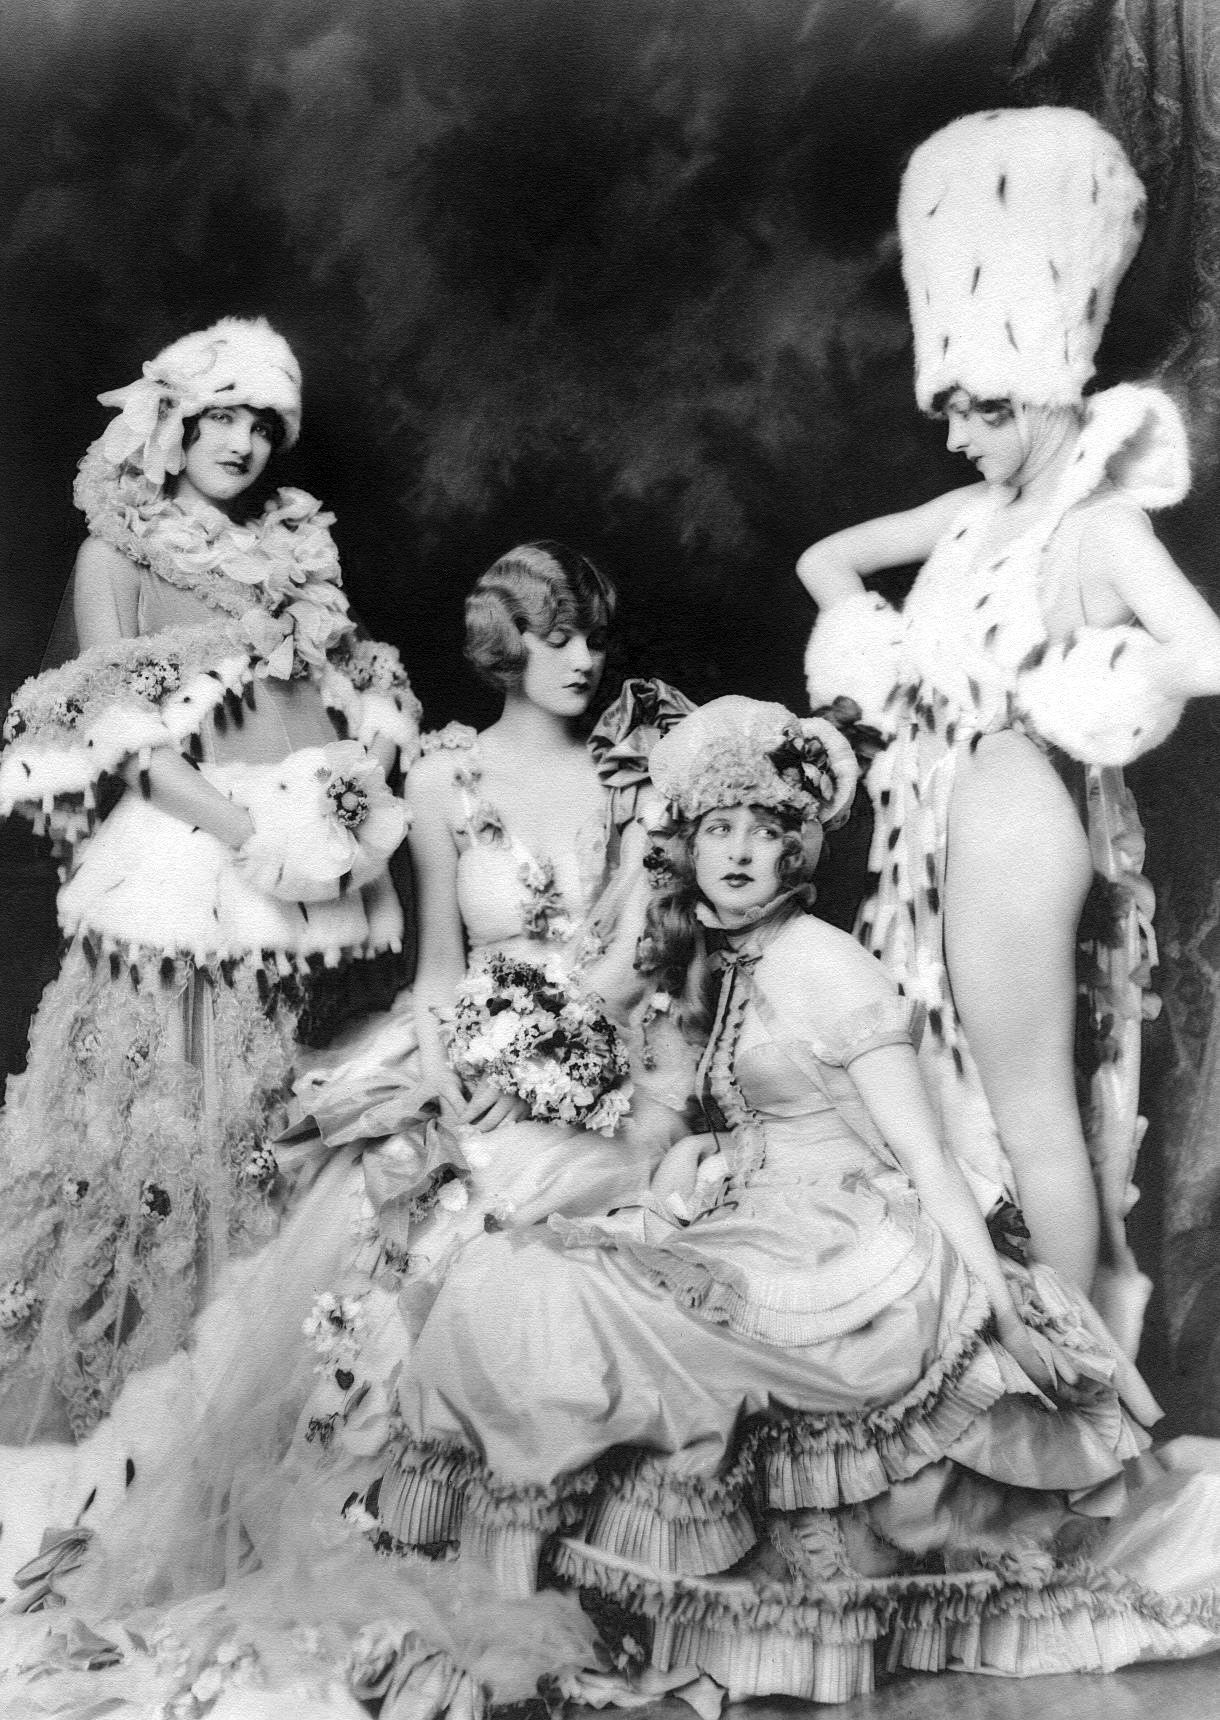 Alfred Cheney Johnston: Jean Ackerman, Jeanne Audree, Myrna Darby and Evelyn Groves, 1920s